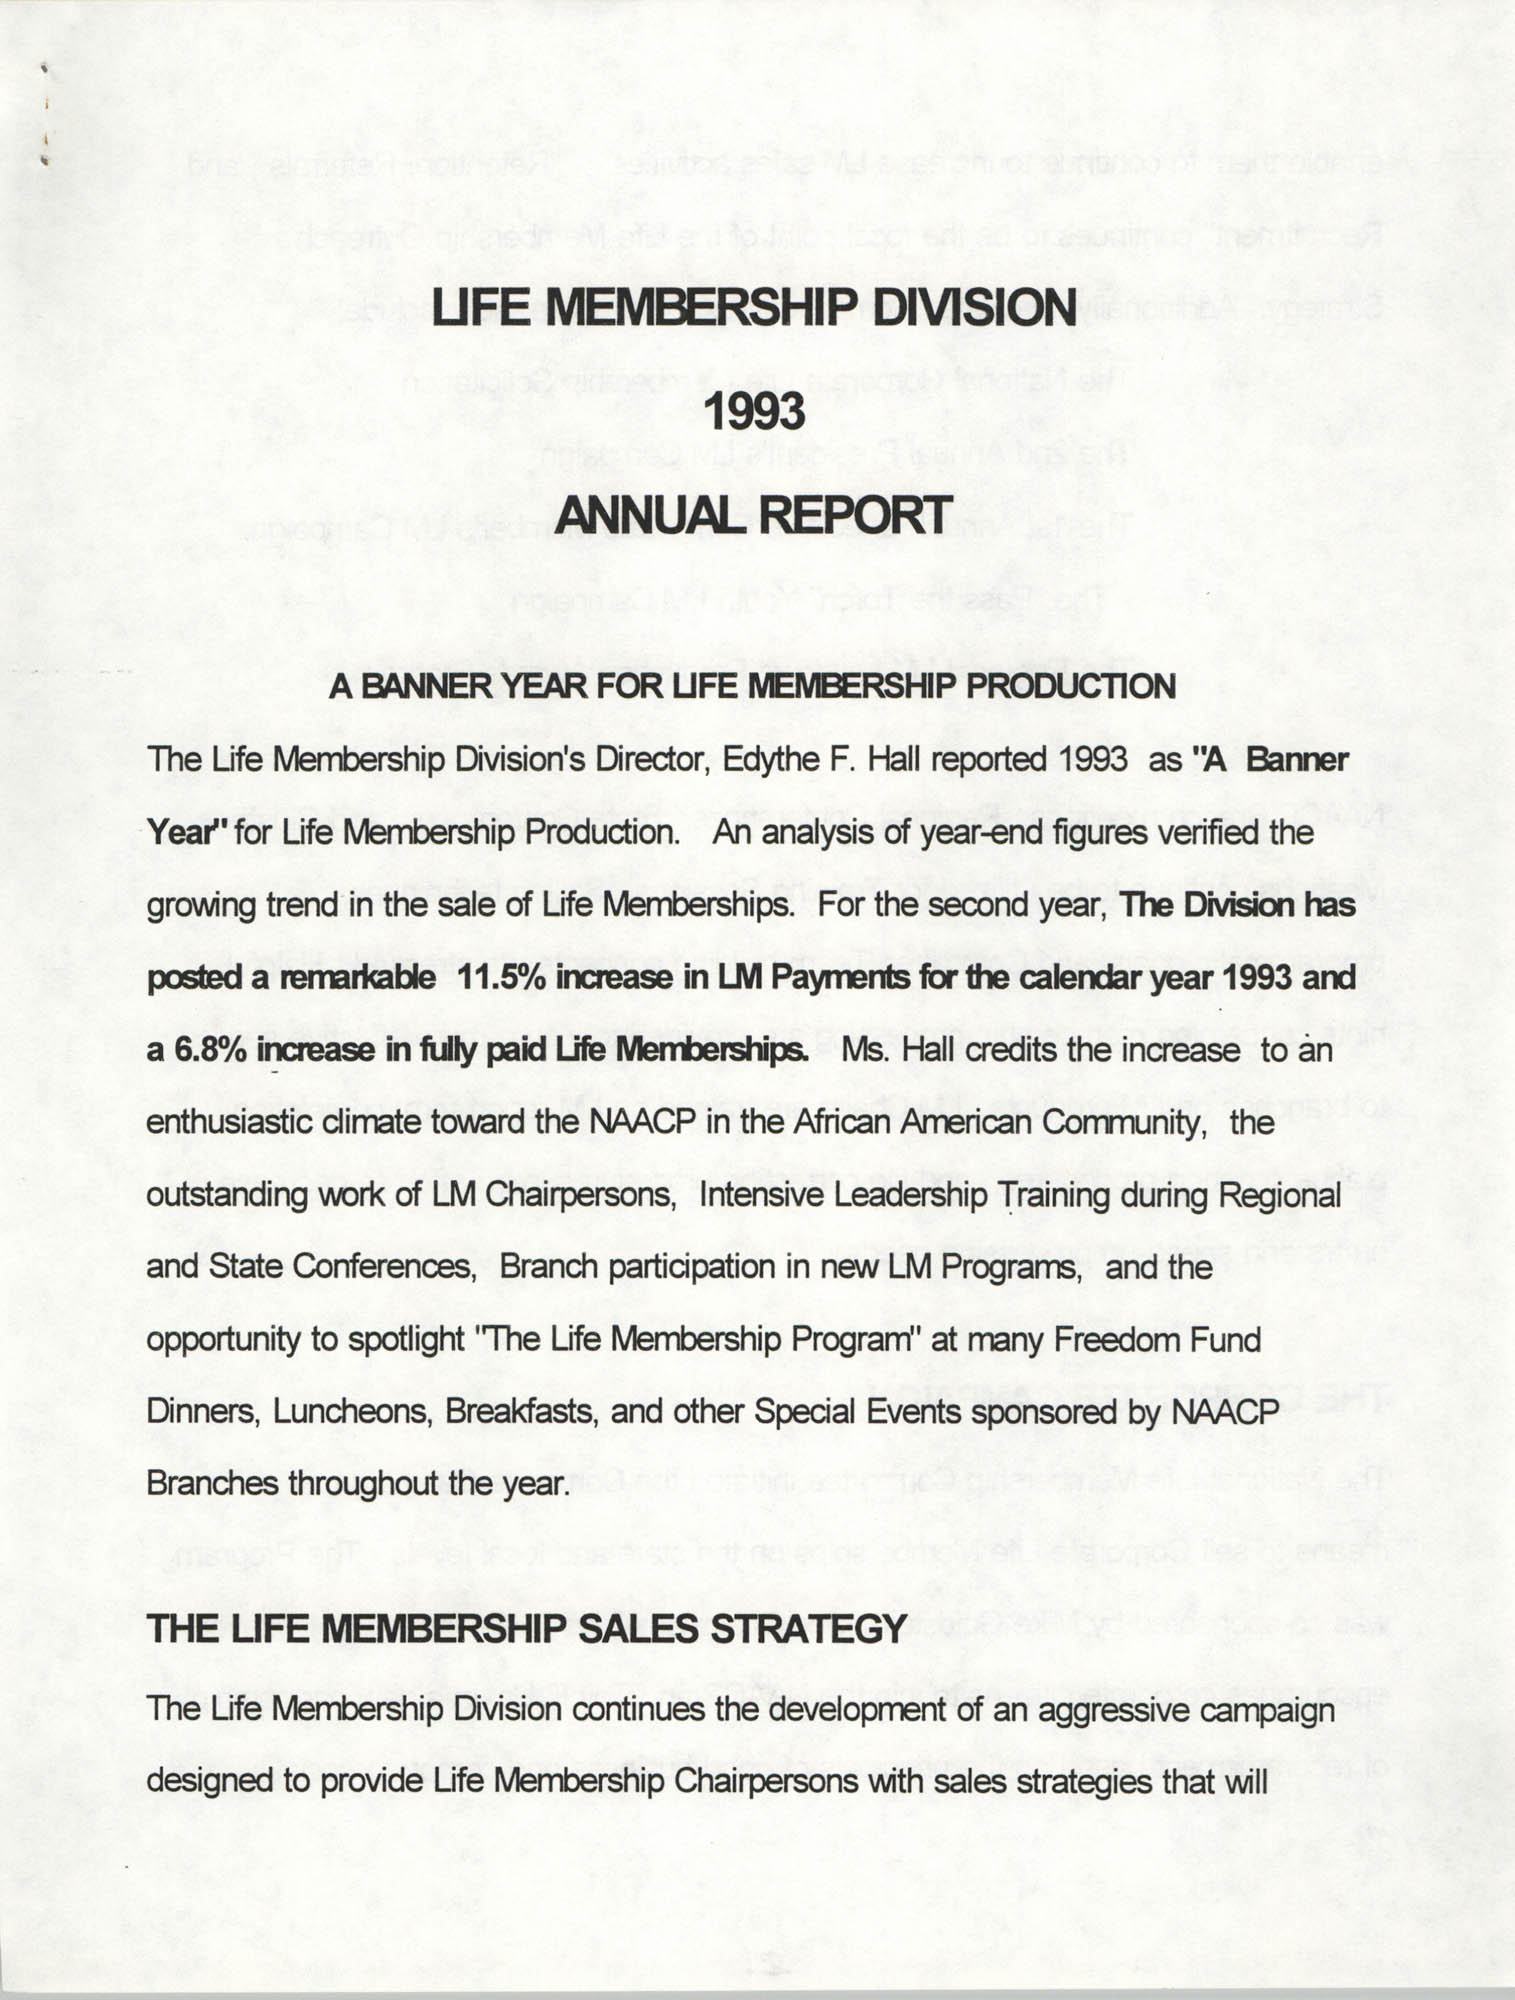 Life Membership Division, 1993 Annual Report, Page 1